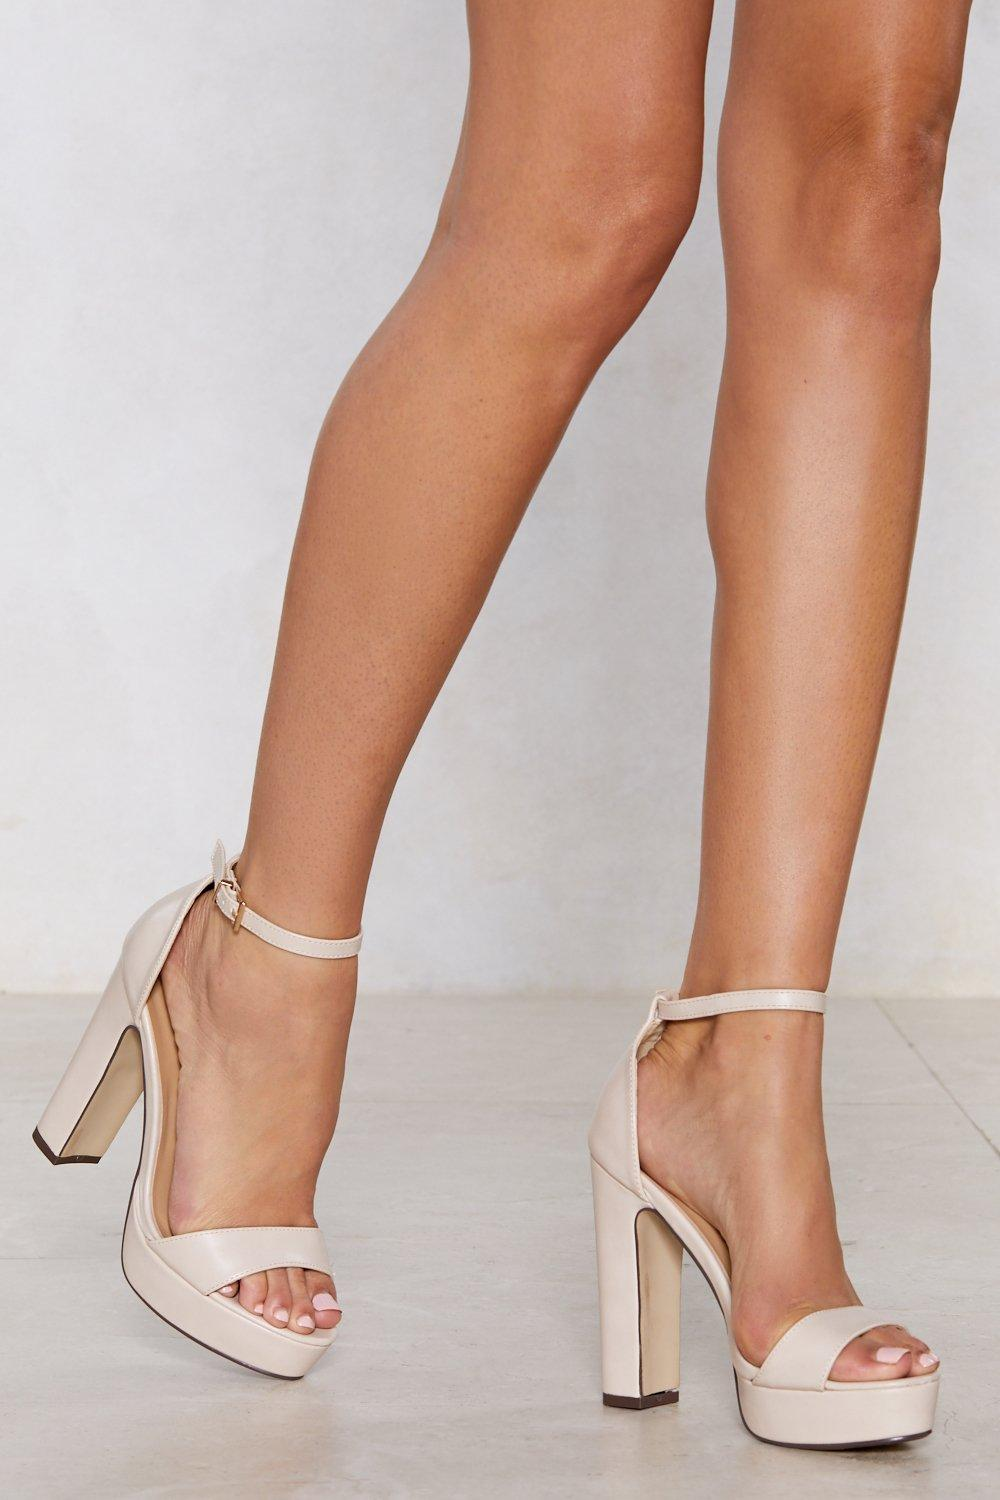 On the Rise Platform Heel fashion Style cheap price sale authentic cheap price cost a130wSIRN